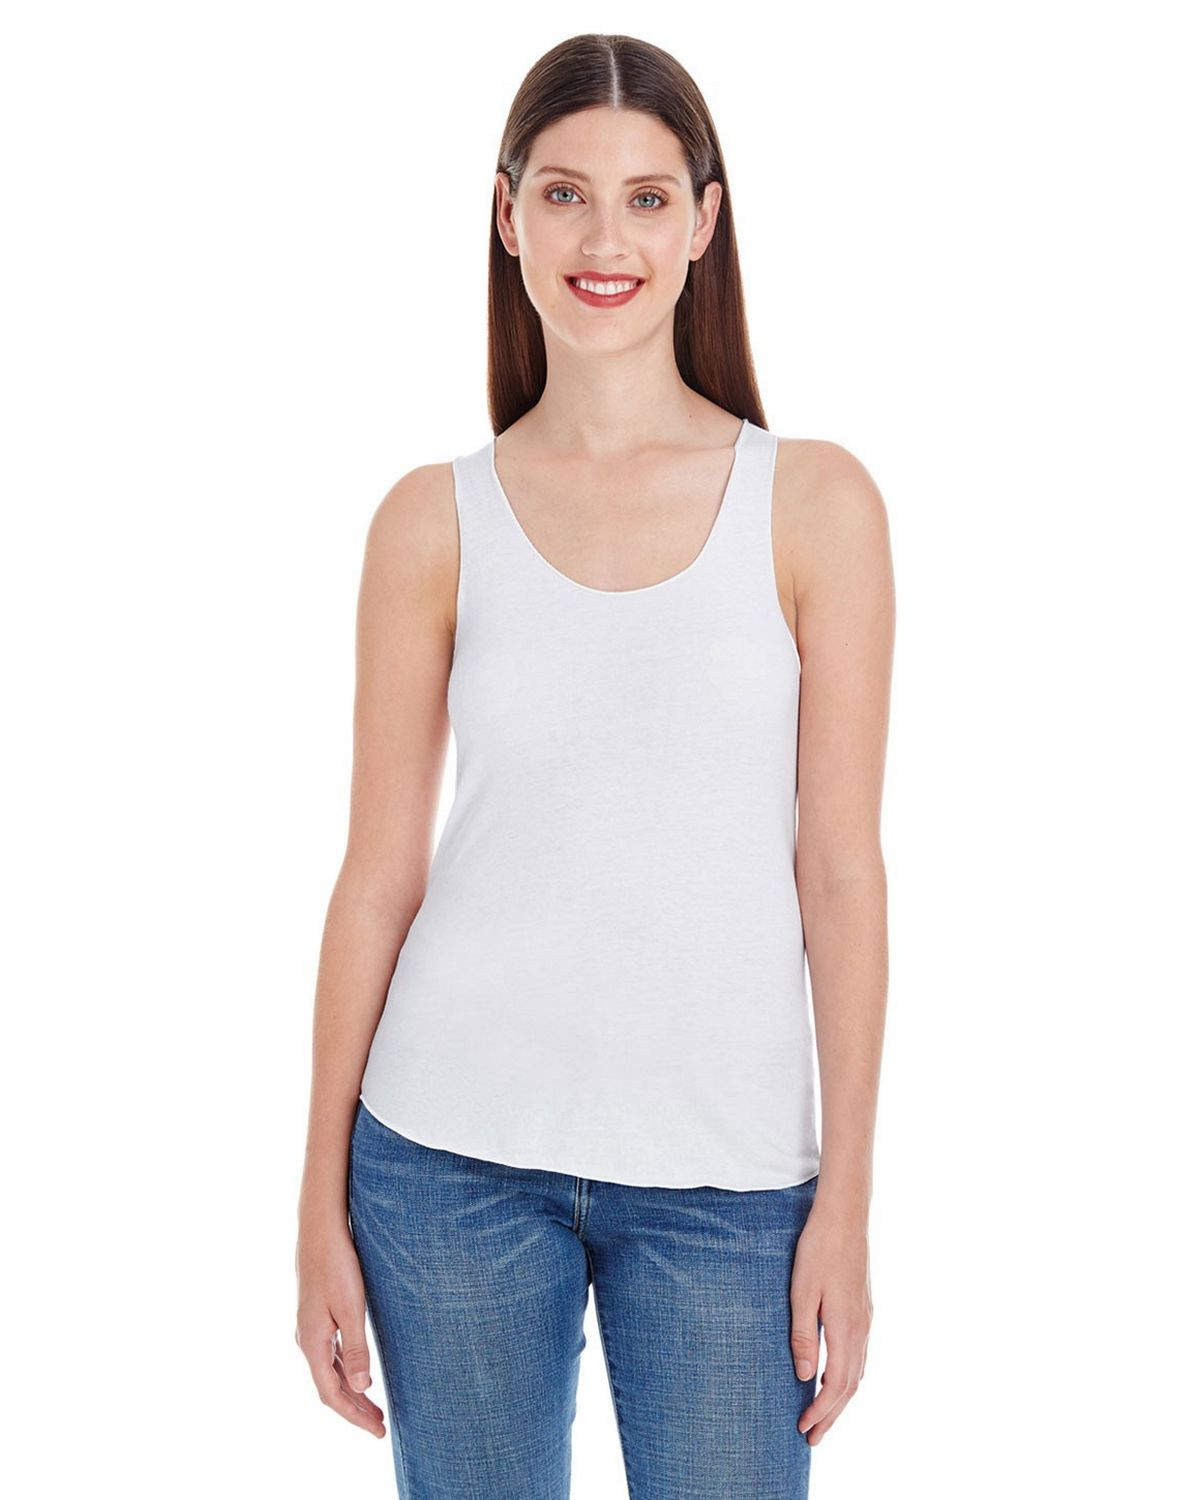 American Apparel BB308W Women's Poly-Cotton Racerback Tank Top